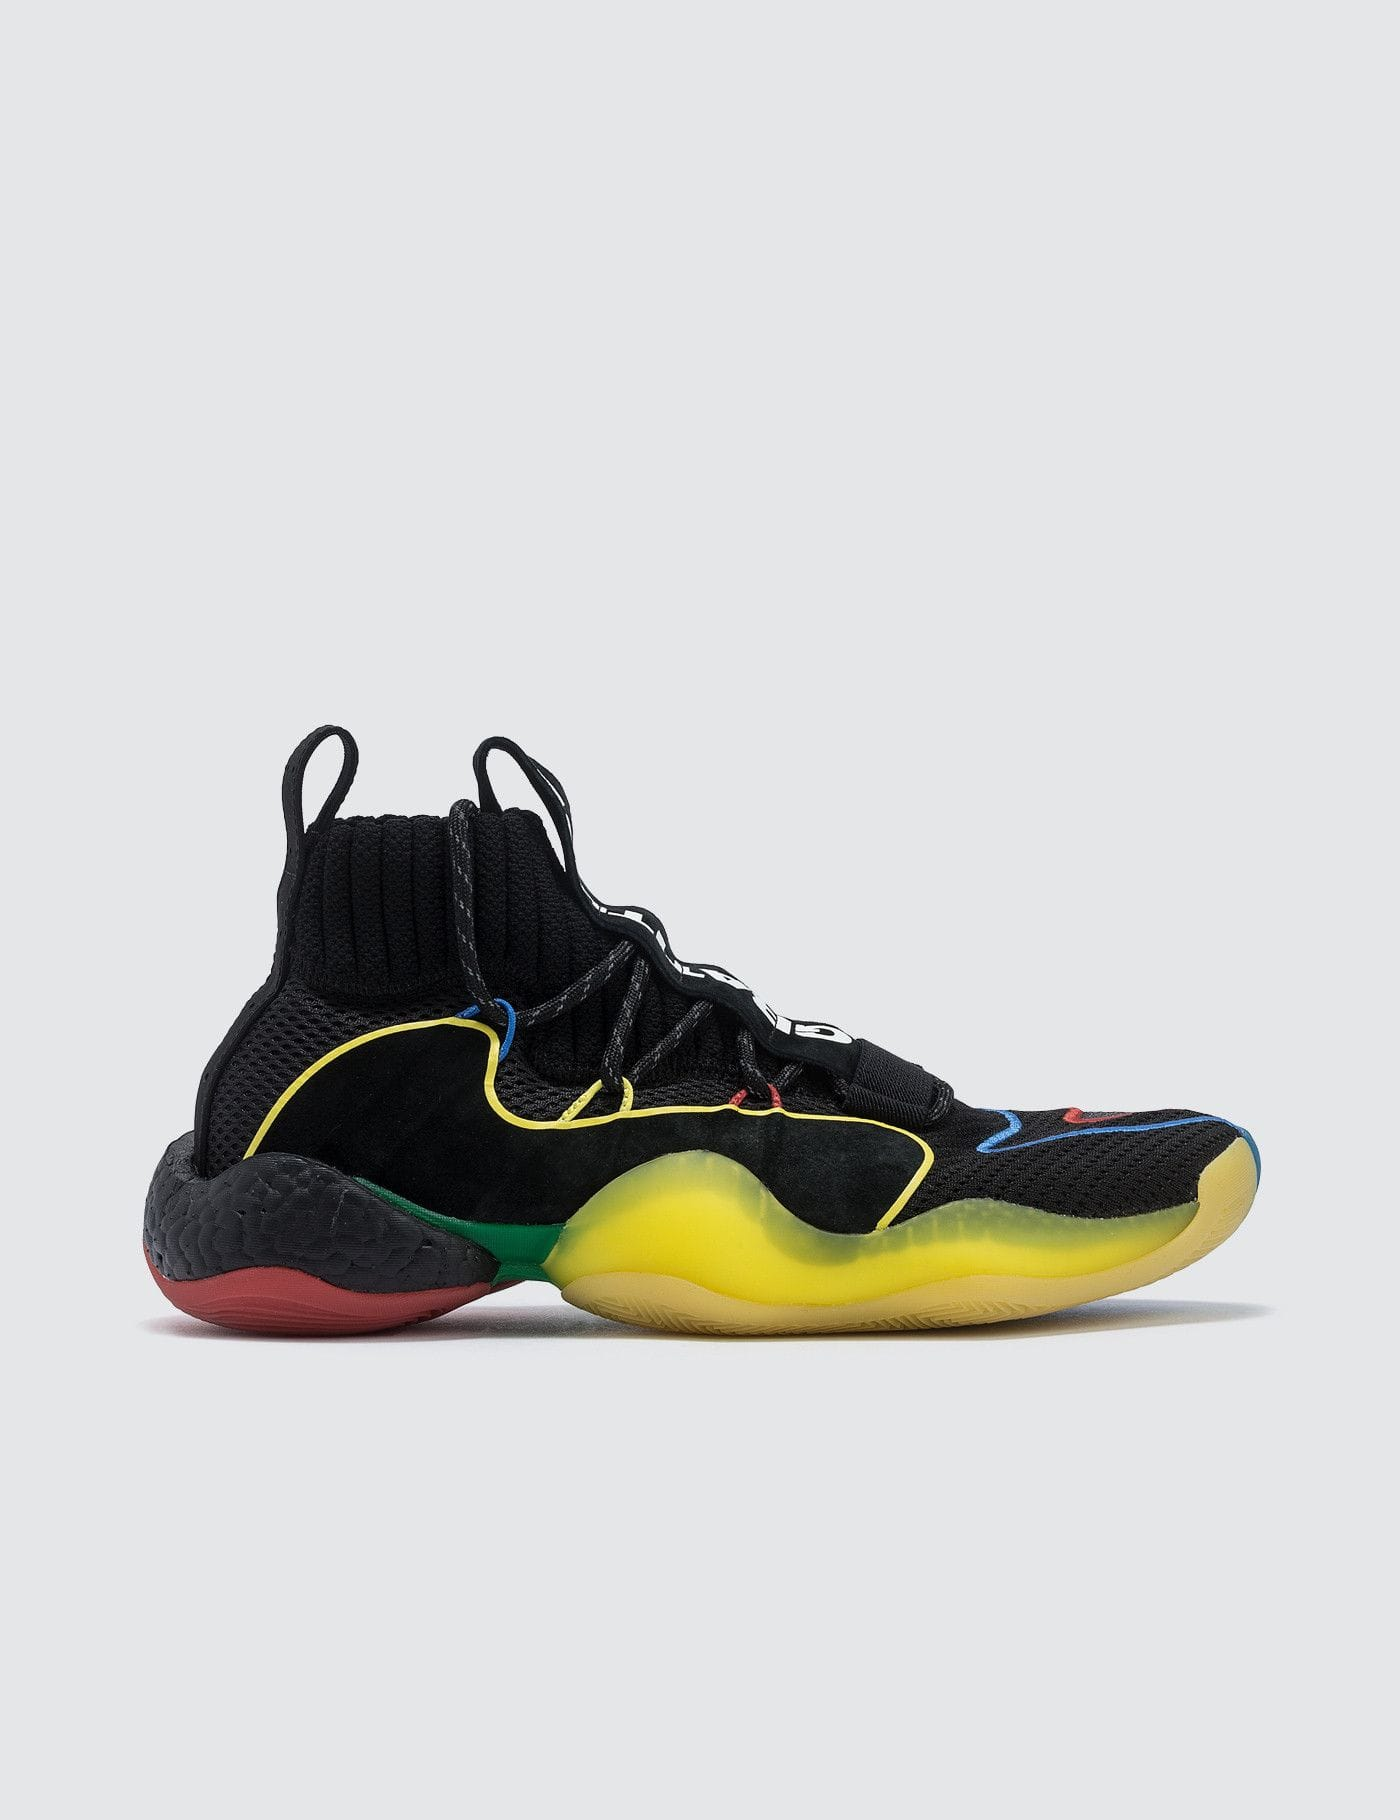 promo code 39c08 867f4 Pharrell Williams x Adidas Crazy BYW LVL X, Adidas Originals